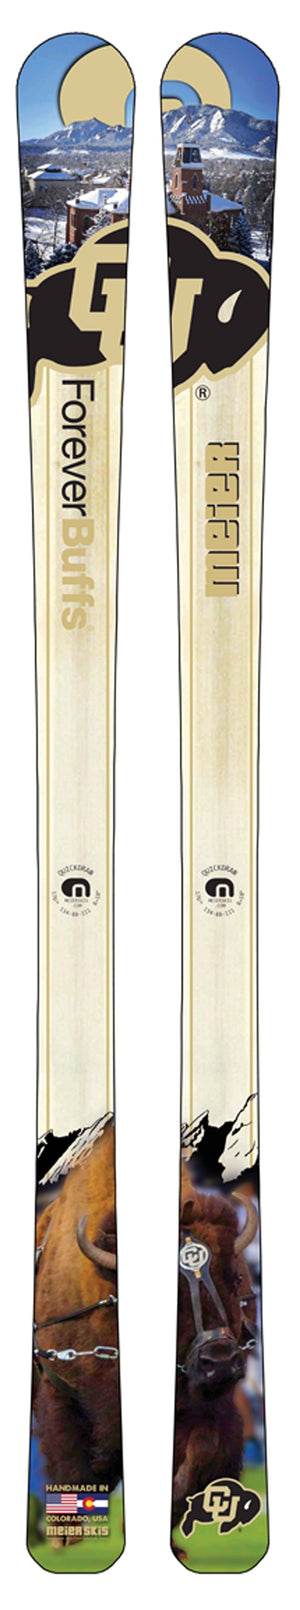 University of Colorado Custom Ski